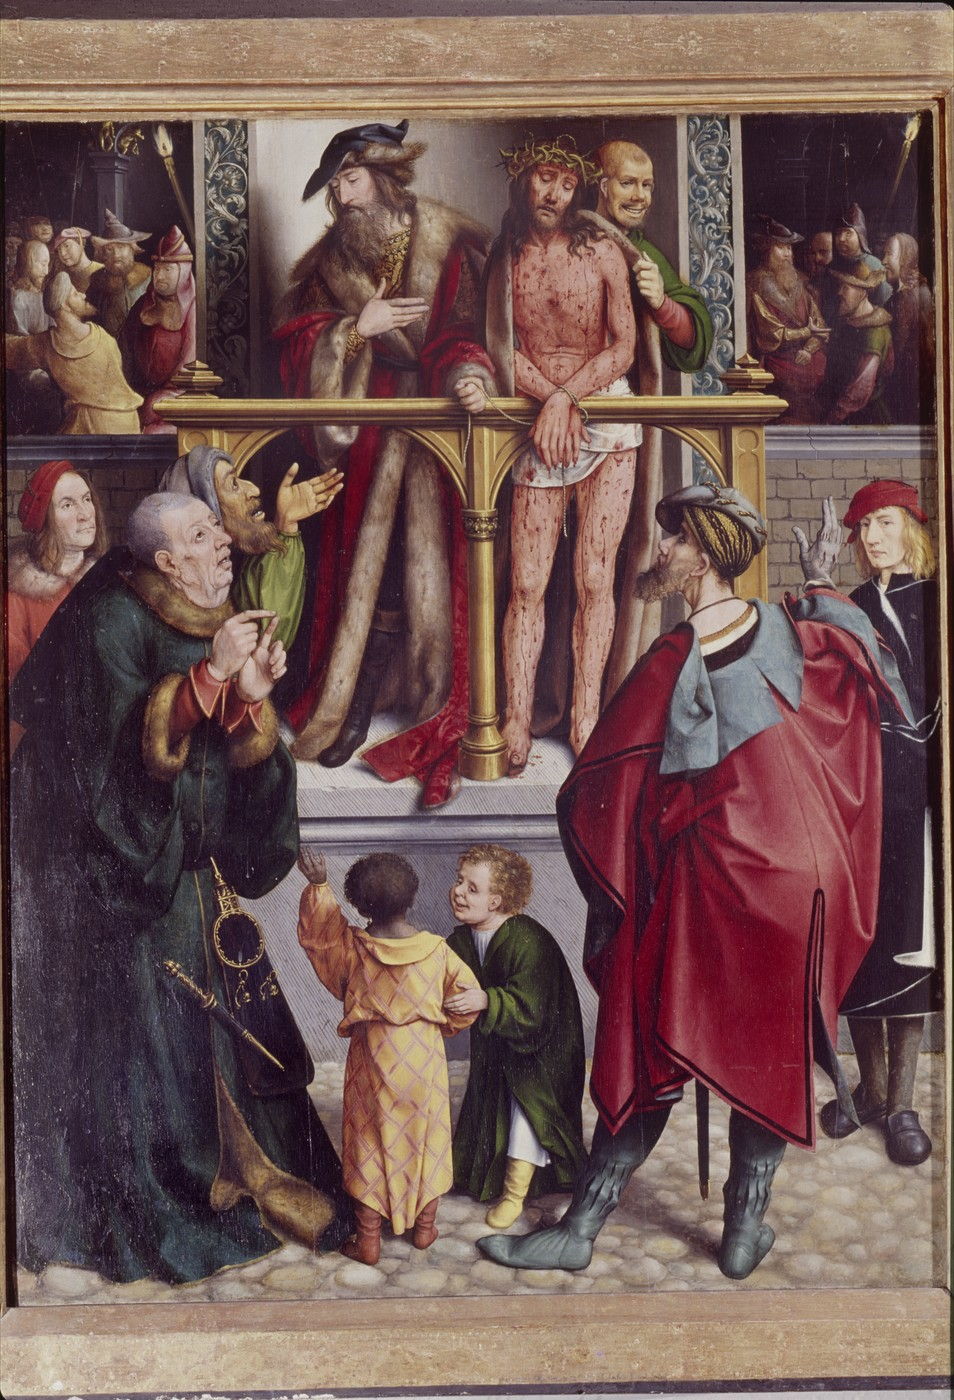 Jan Joest von Kalkar_Ecce HOmo_Kalkar (Cleves), Catholic Parish of St. Nicholas_1508